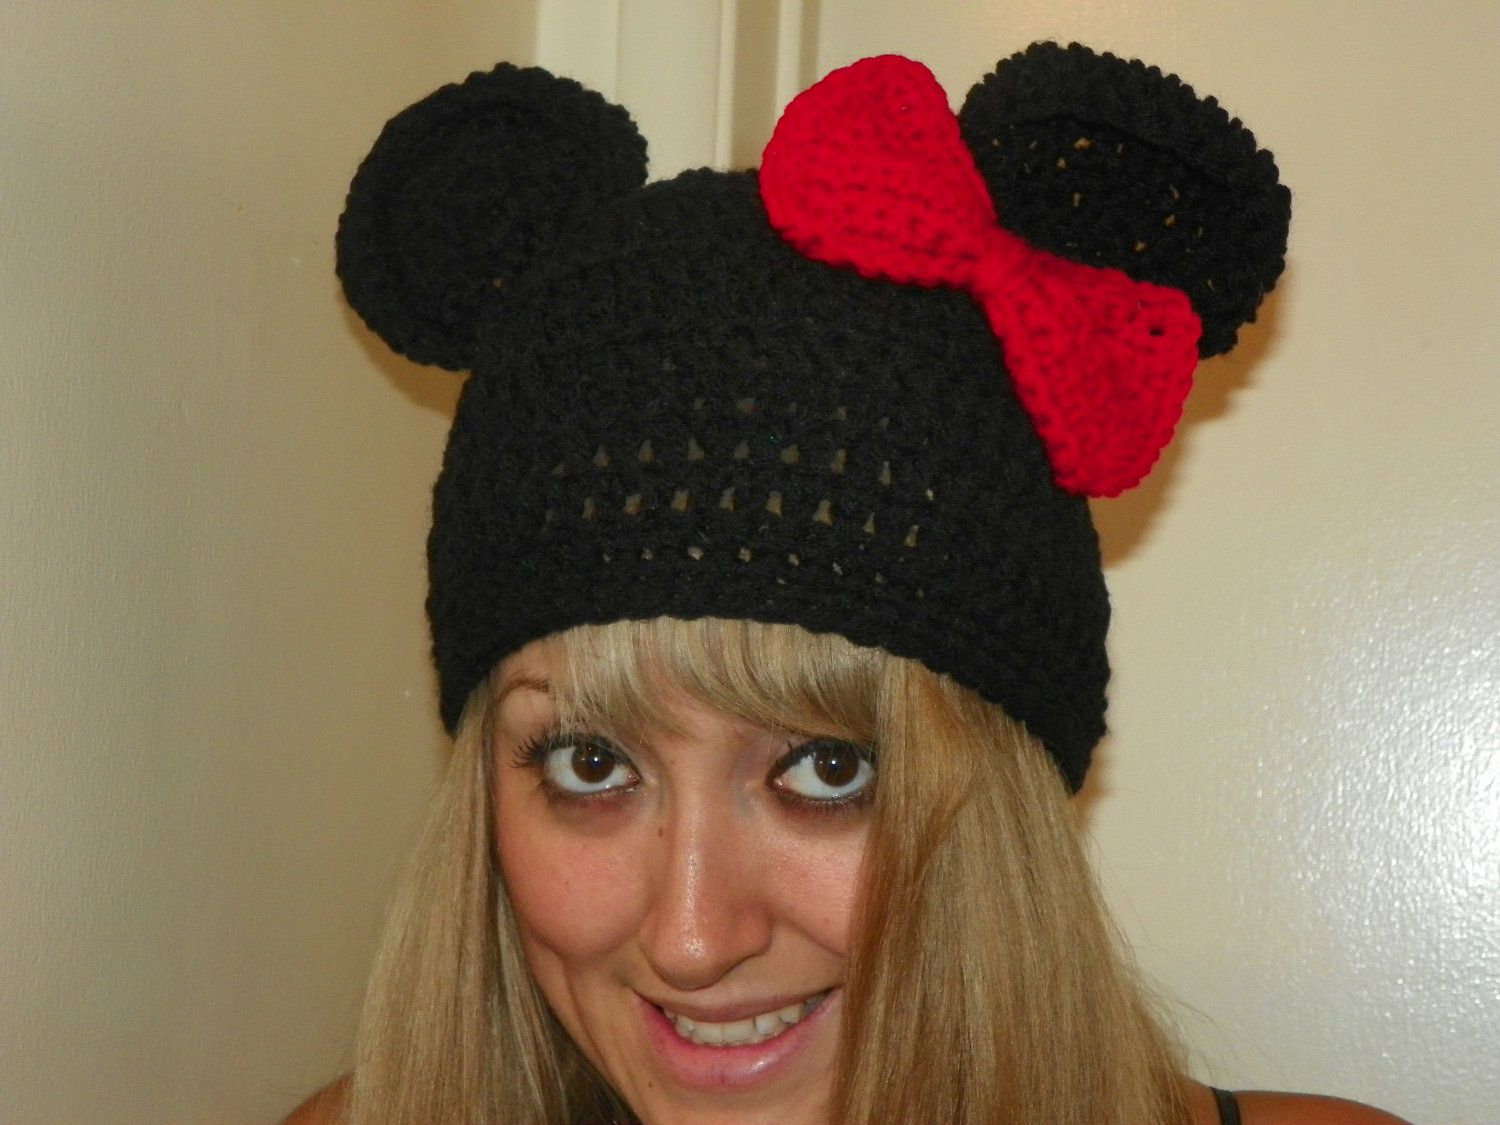 Minnie Mouse Hat with a Red Bow Minnie Mouse Beanie Hat for a Teen Adult  Hand Crochet You Could Custom Order any Size ec7f7f30e7b3